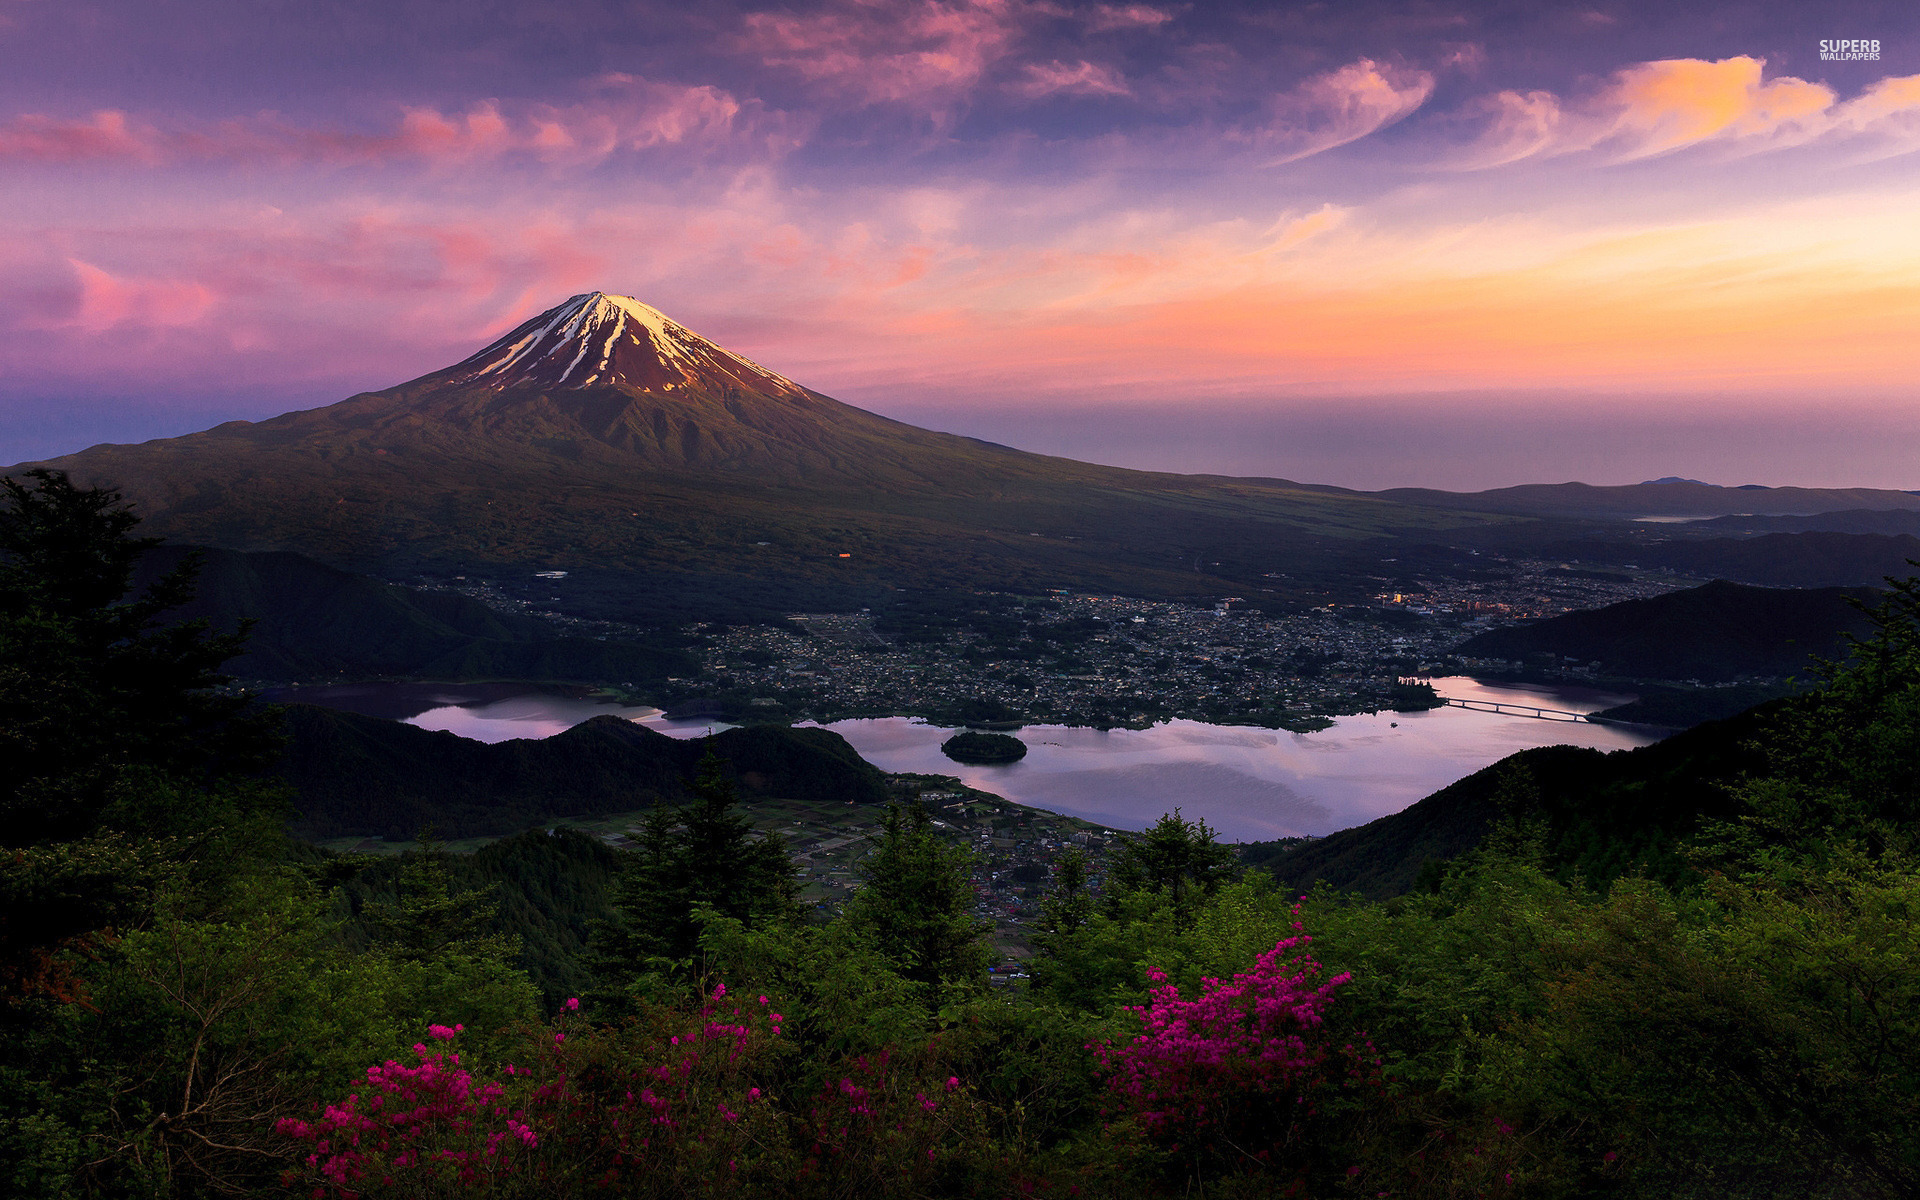 Mount Fuji Japan Asia wallpapers Mount Fuji Japan Asia stock photos 1920x1200